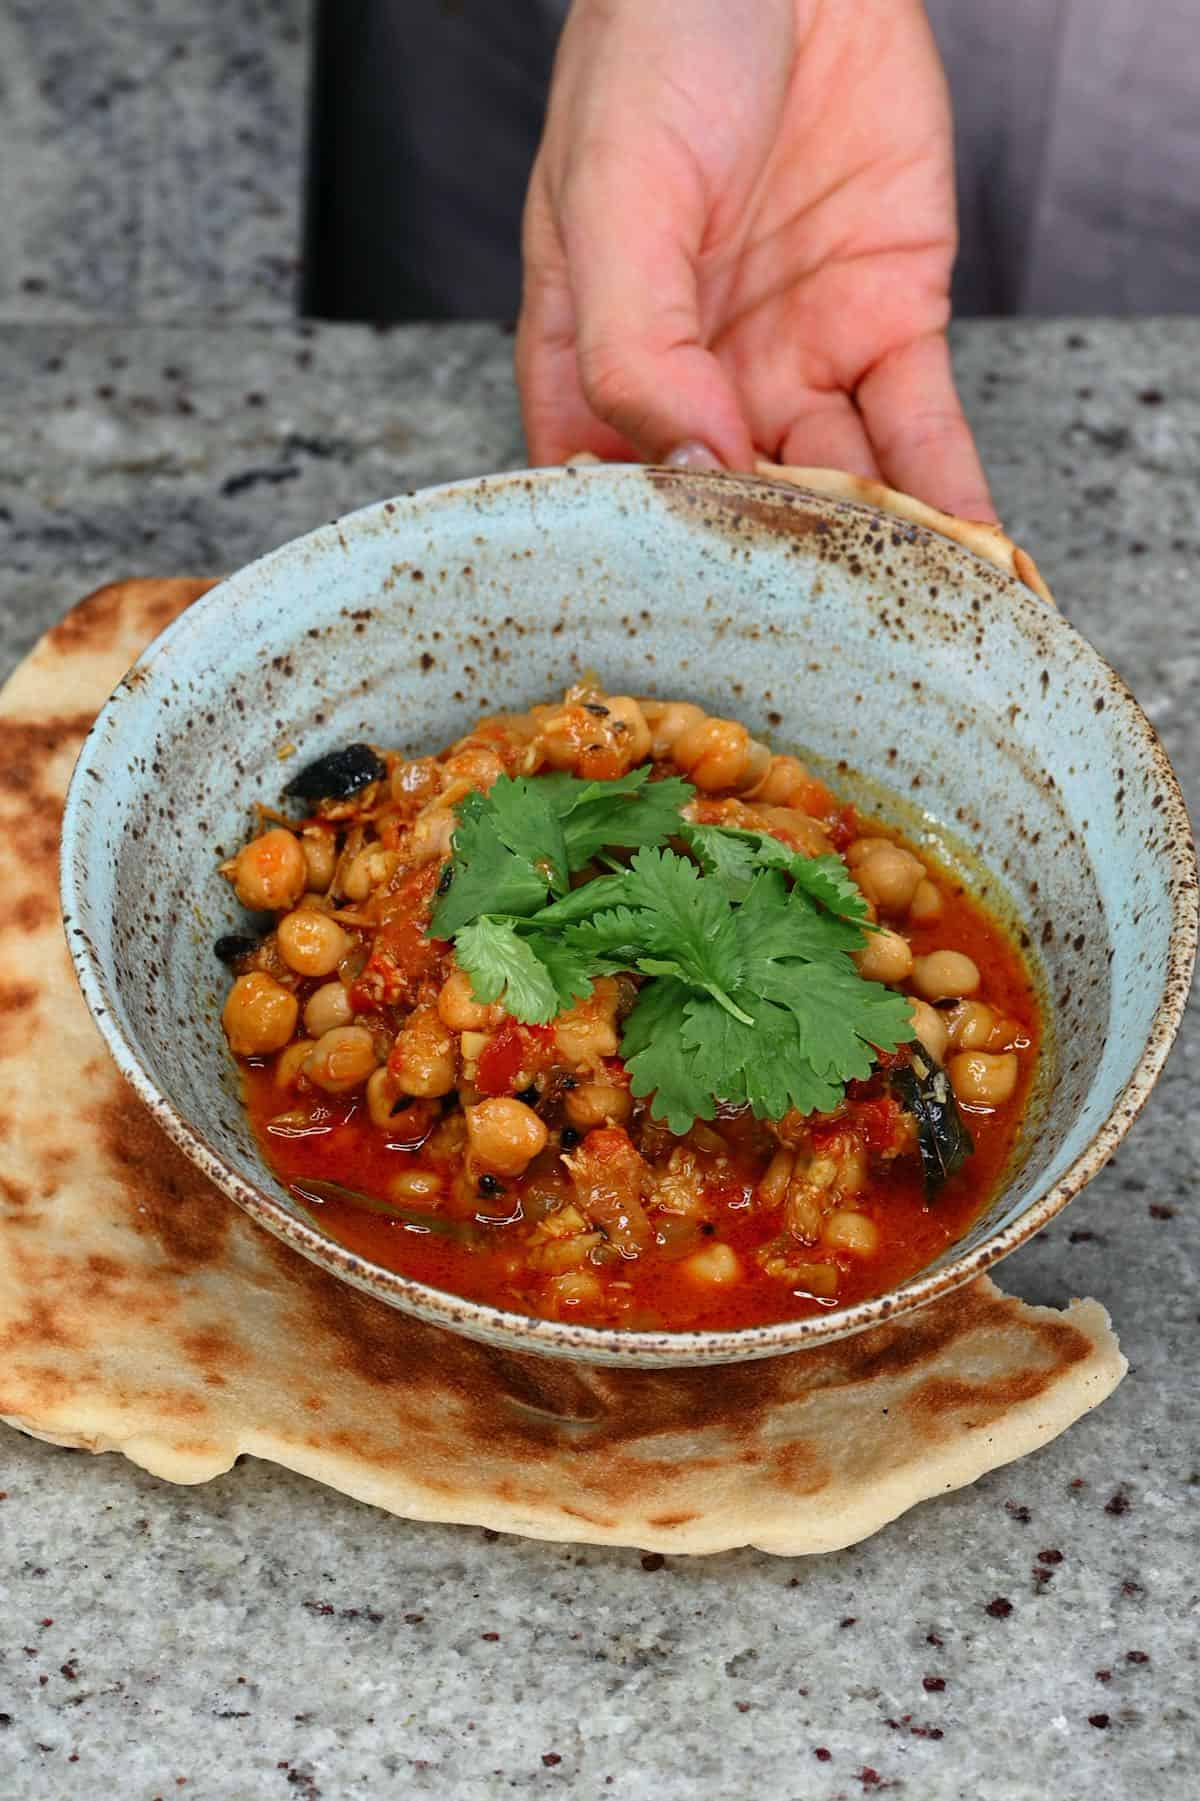 A bowl of chickpea curry and naan bread